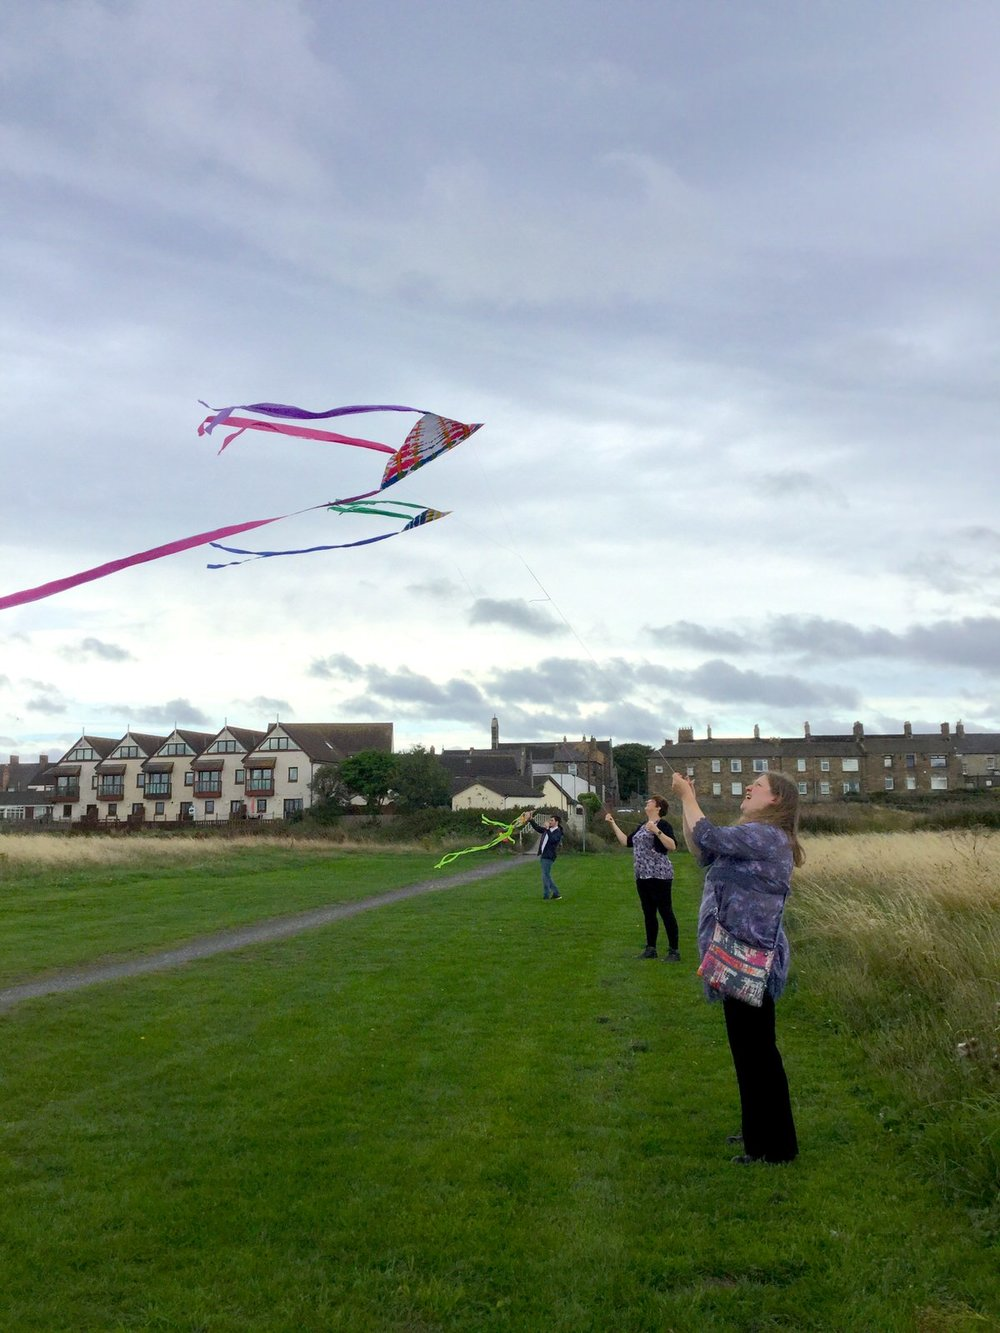 kites-flying-amble.jpeg